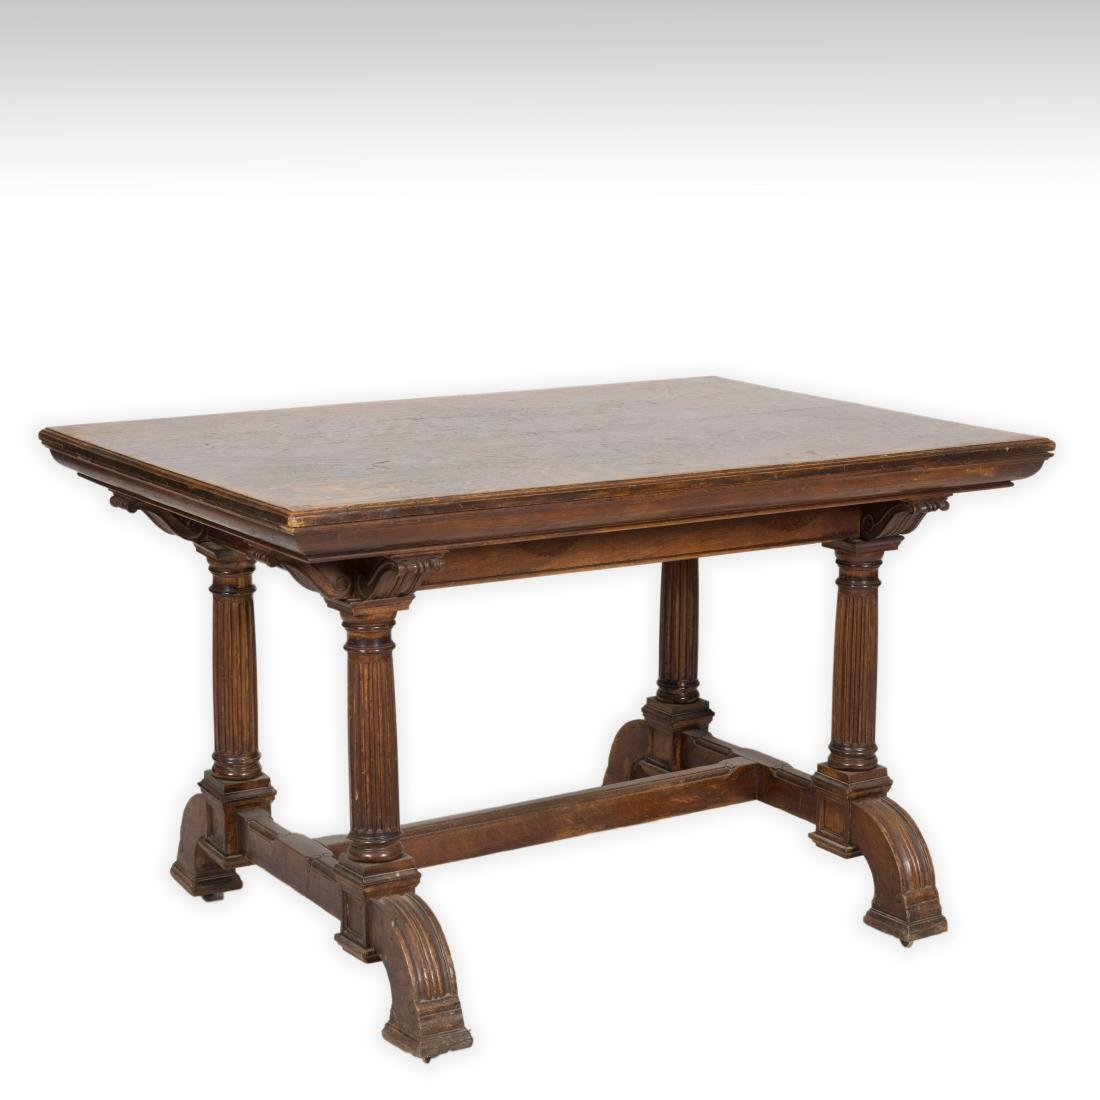 Oak Library Table with Footed Legs